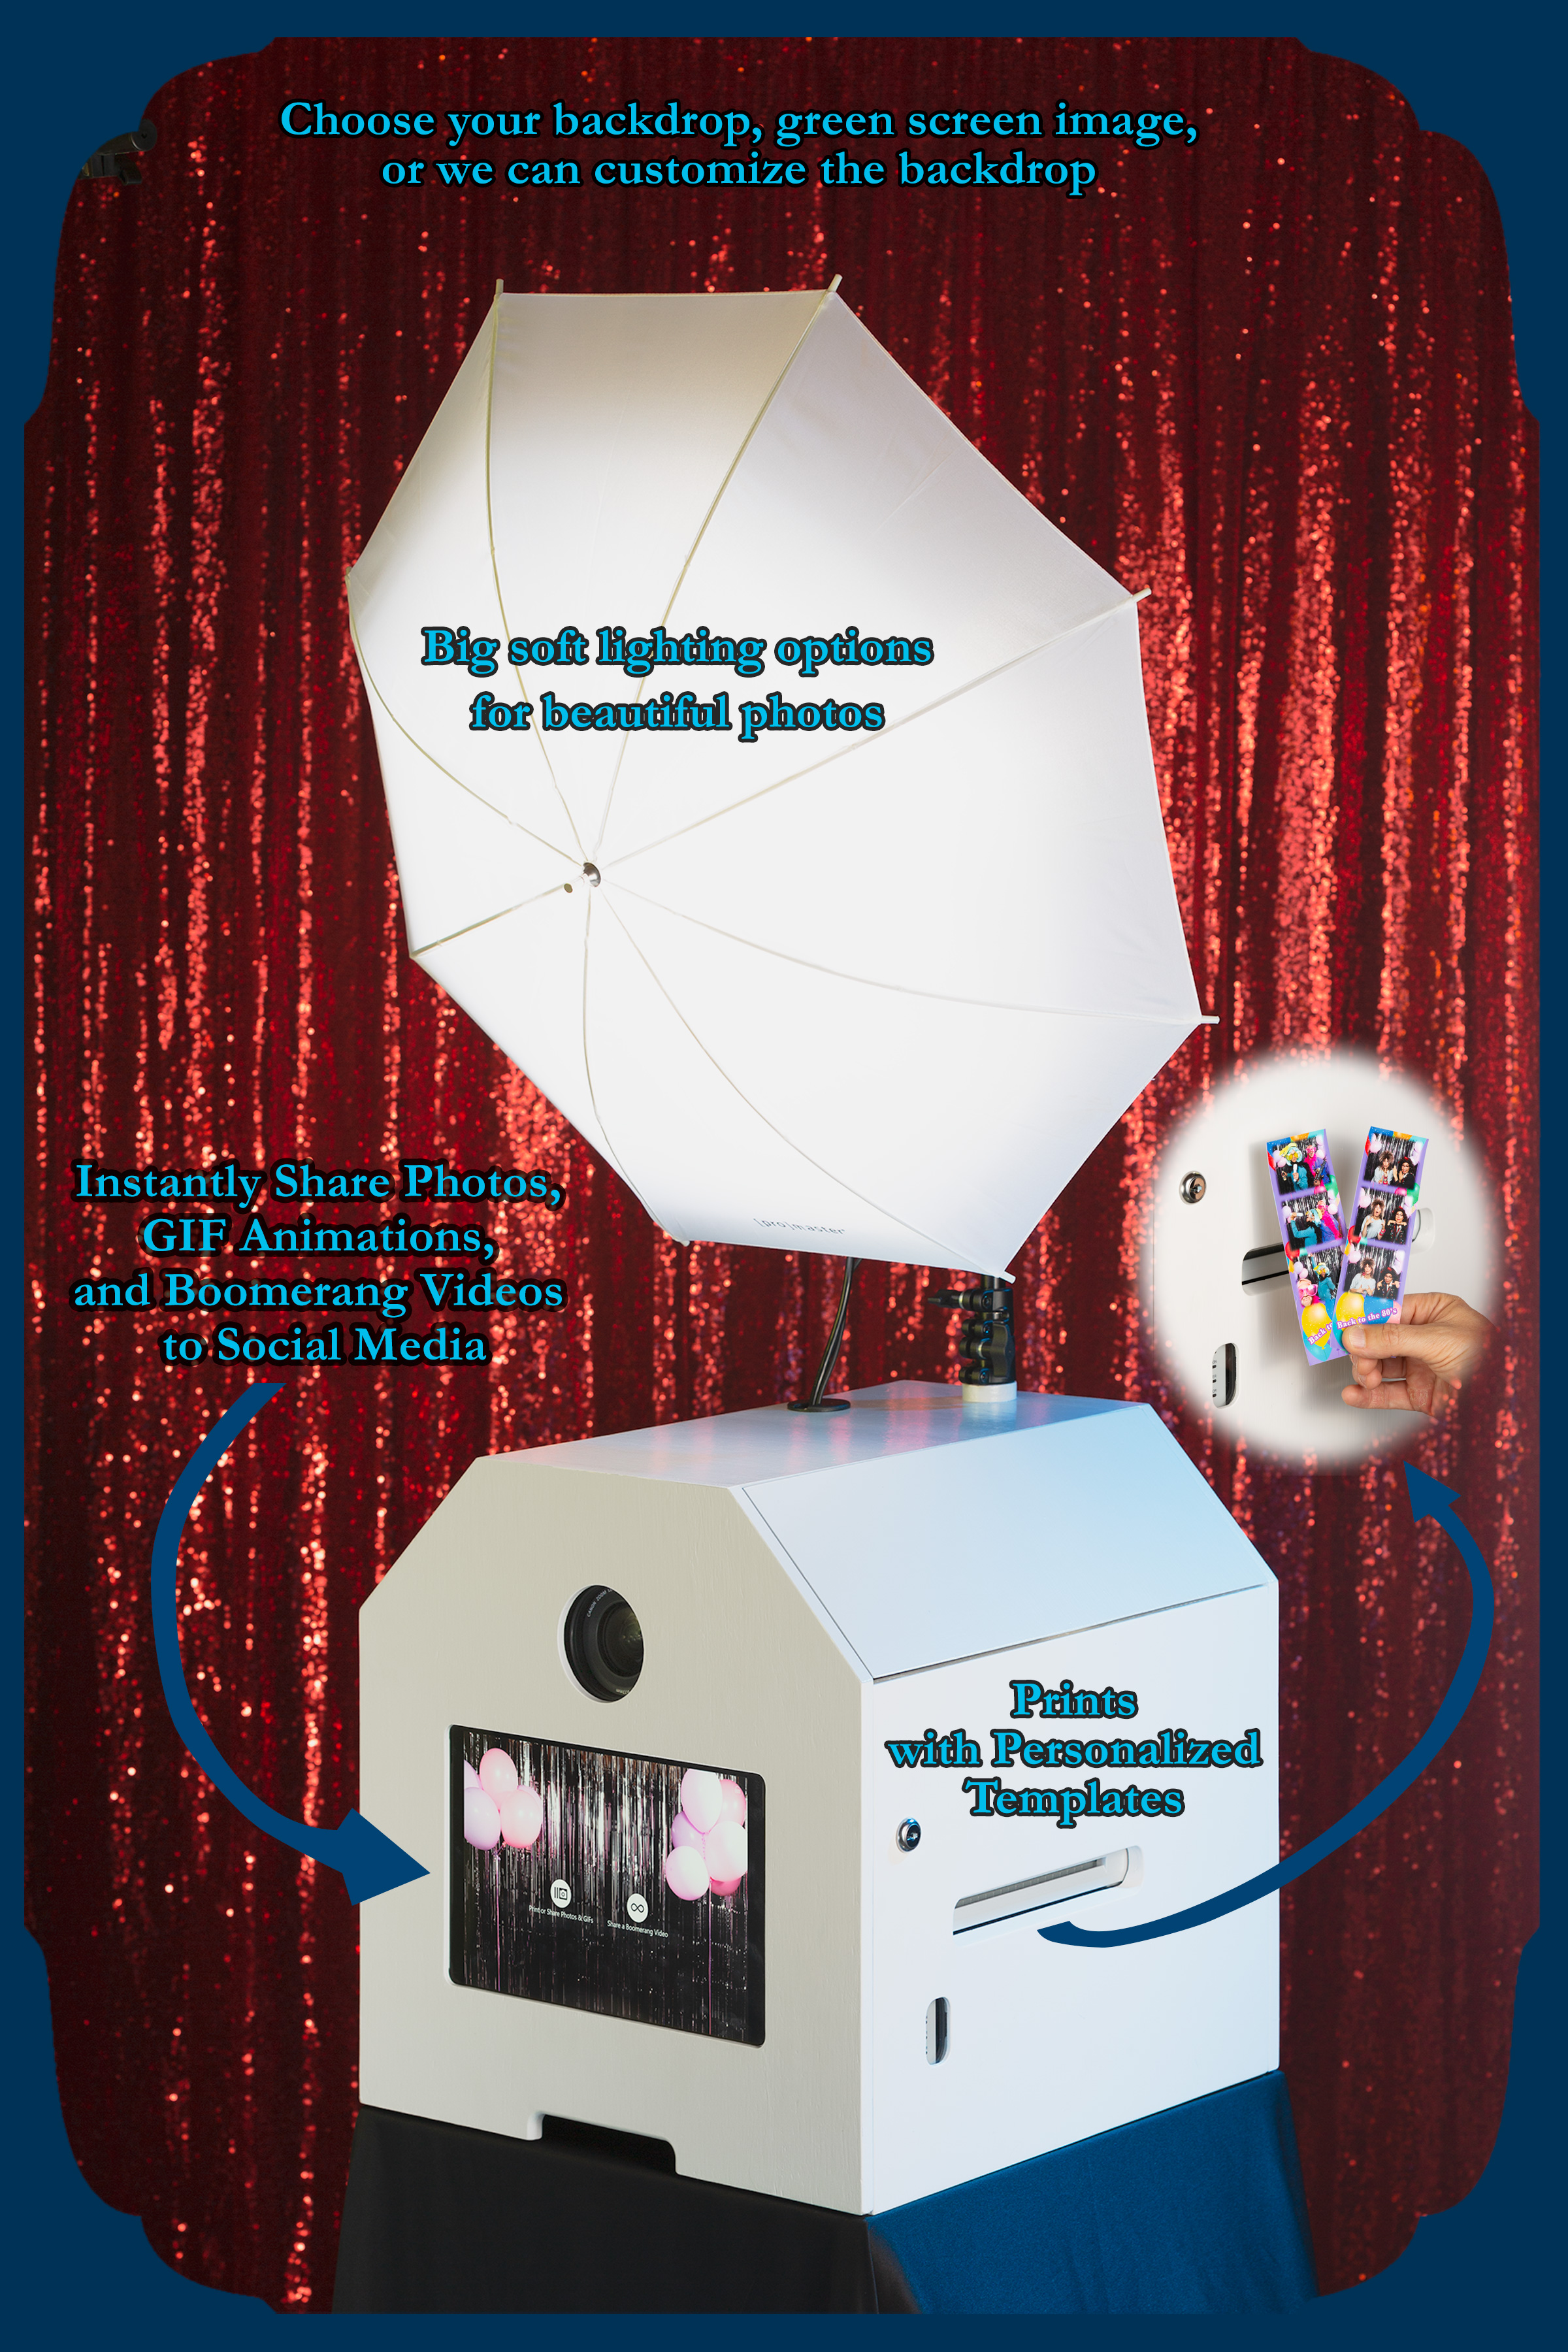 Features - We built our photo booth to handle any event. We adjust our lighting, souvenir prints, camera, and touch-screen to suit your needs.